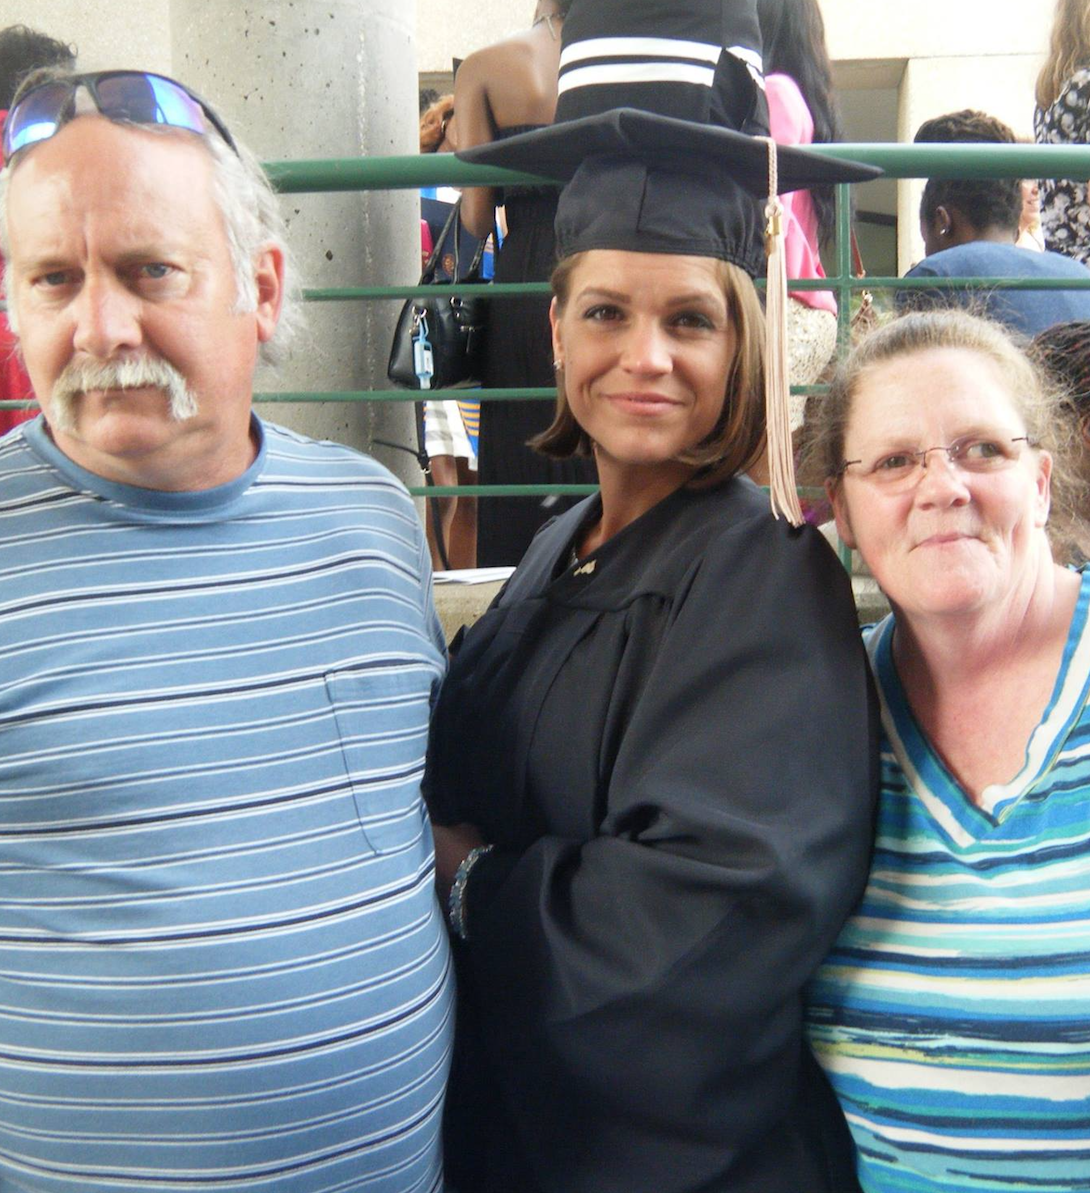 Brandi Wheeler poses with her father and stepmother at her graduation from UMKC in May 2015.